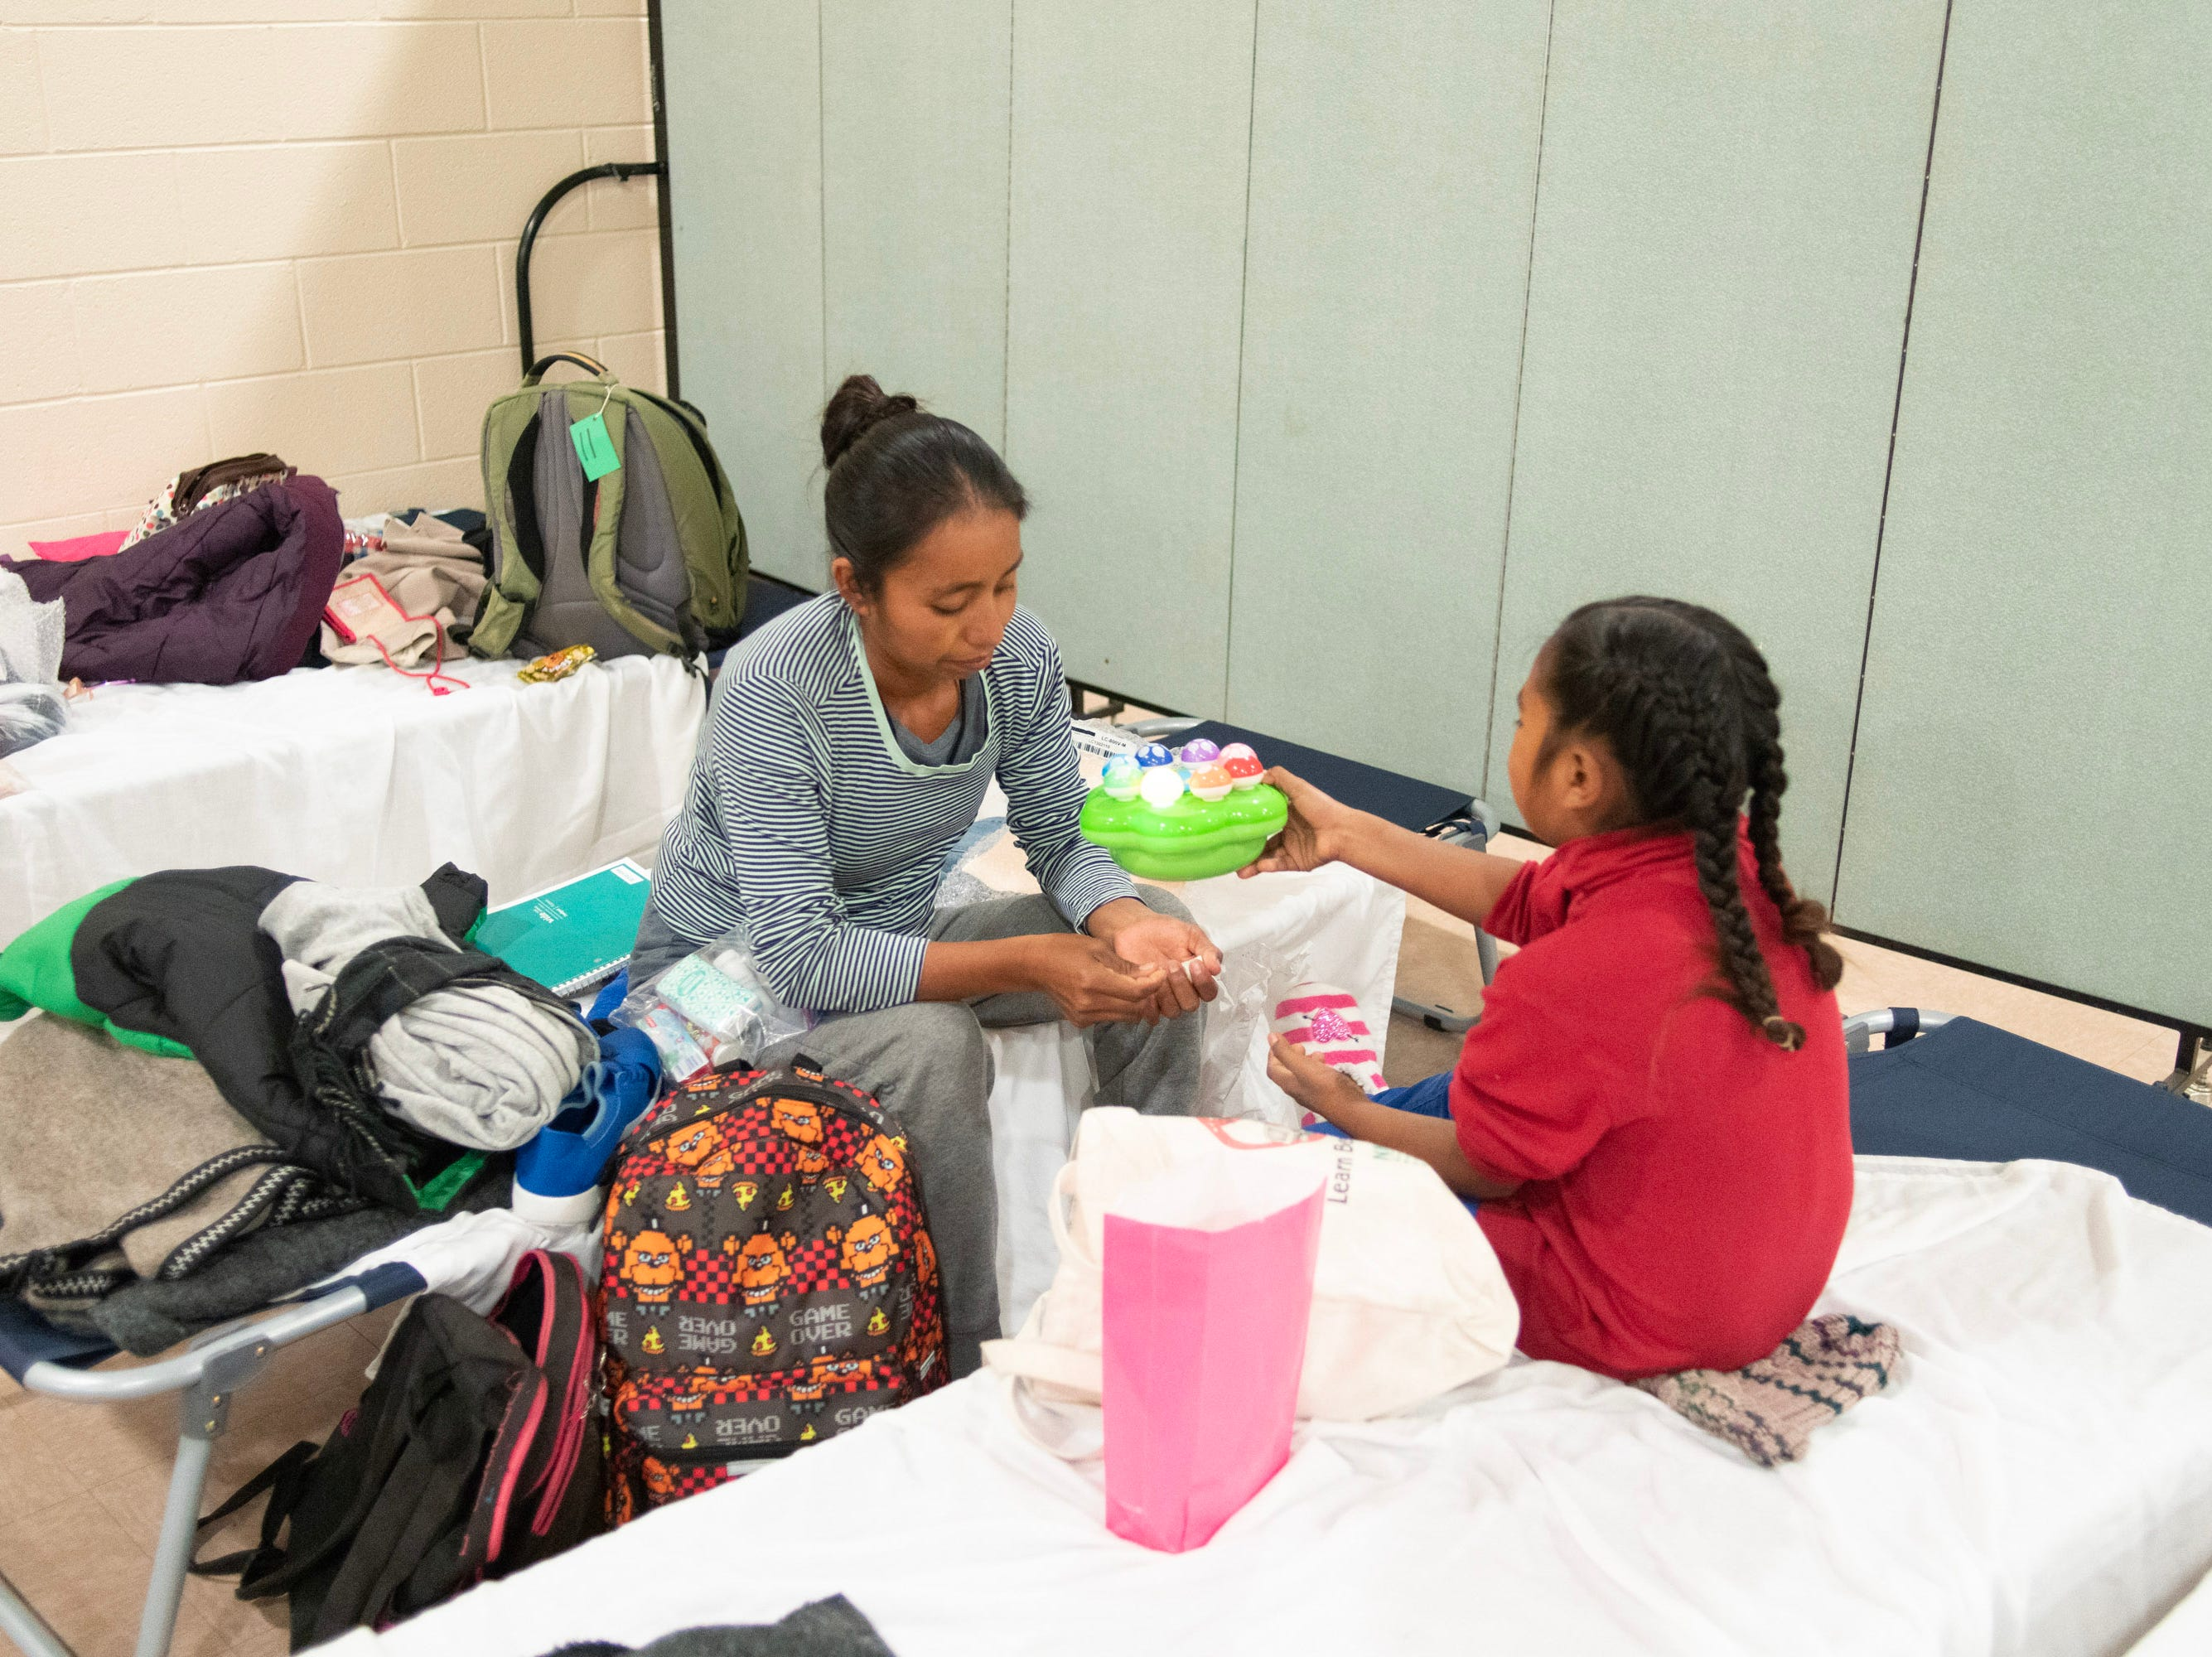 Marcela Teyuco and her daughter play games before getting ready for bed at a migrant shelter in Doña Ana County.